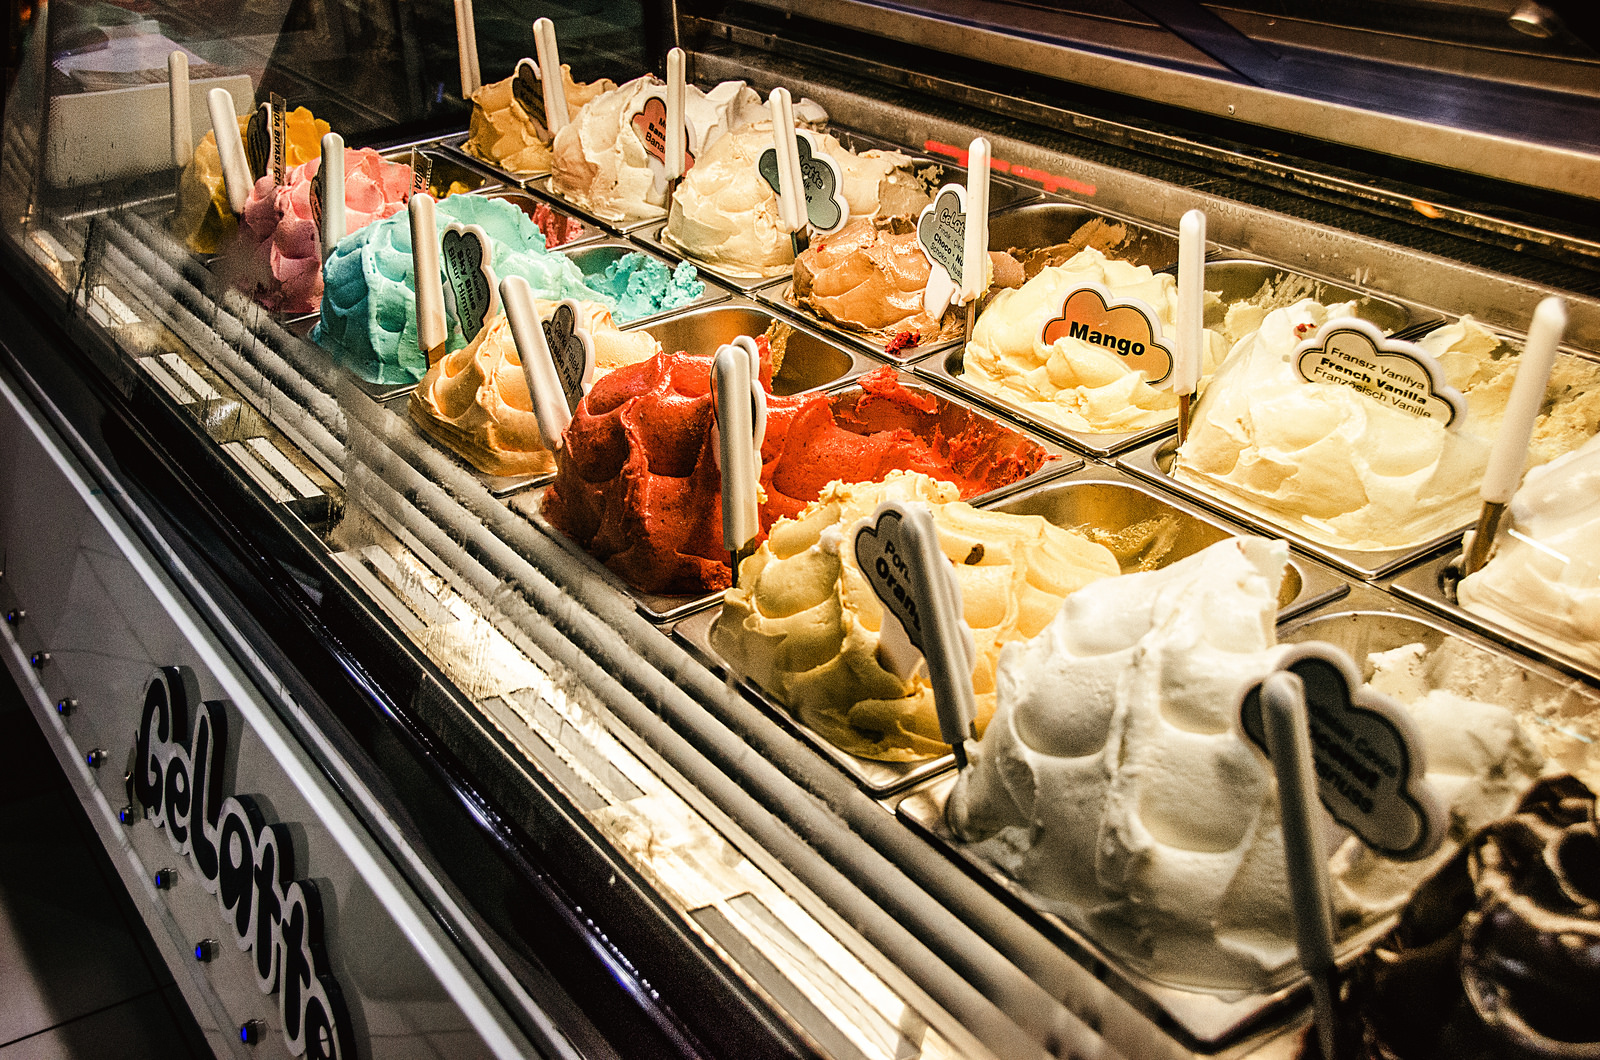 A photo of the ice cream display at GeLatte in Antalya.